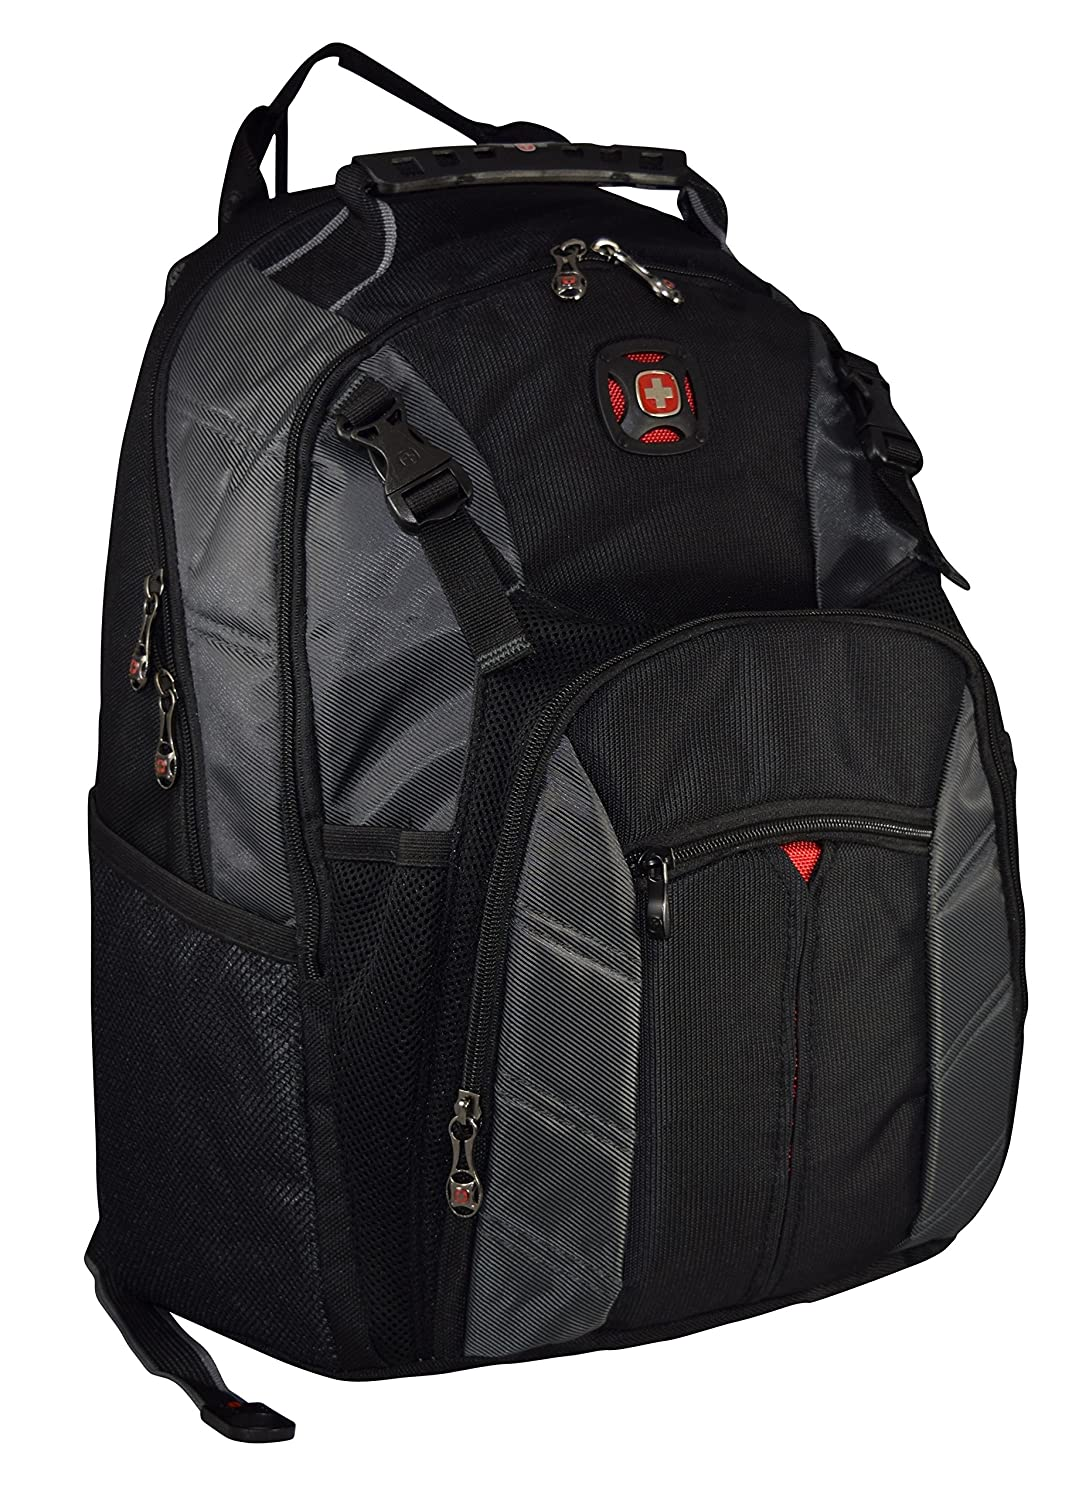 SwissGear The Sherpa 15.6 Padded Laptop Backpack School Travel Bag Black Charcoal